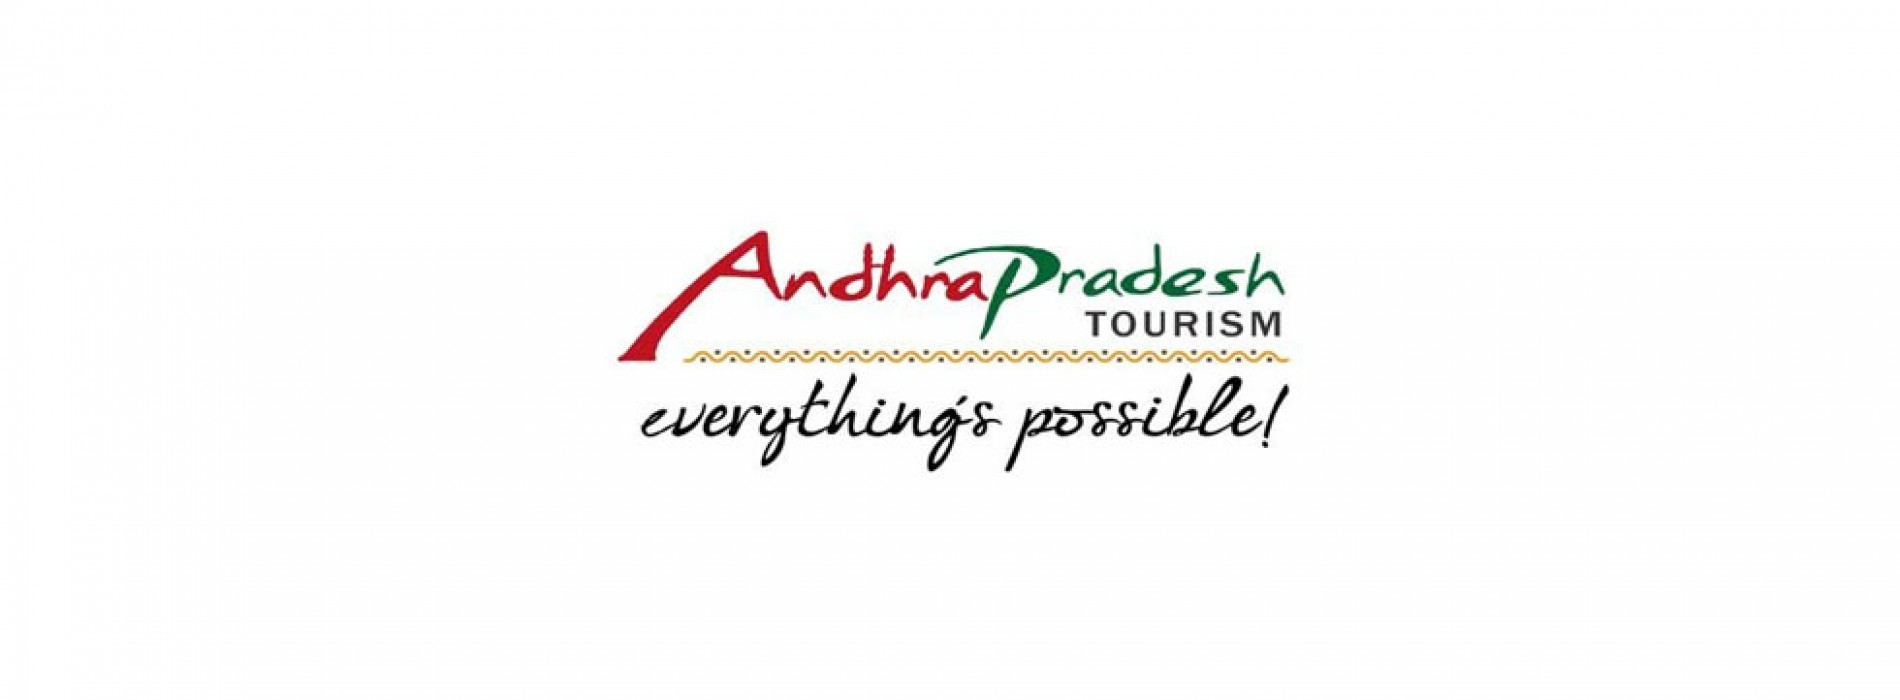 Ajay Devgn and Kajol to be the brand ambassadors of Andhra Pradesh tourism